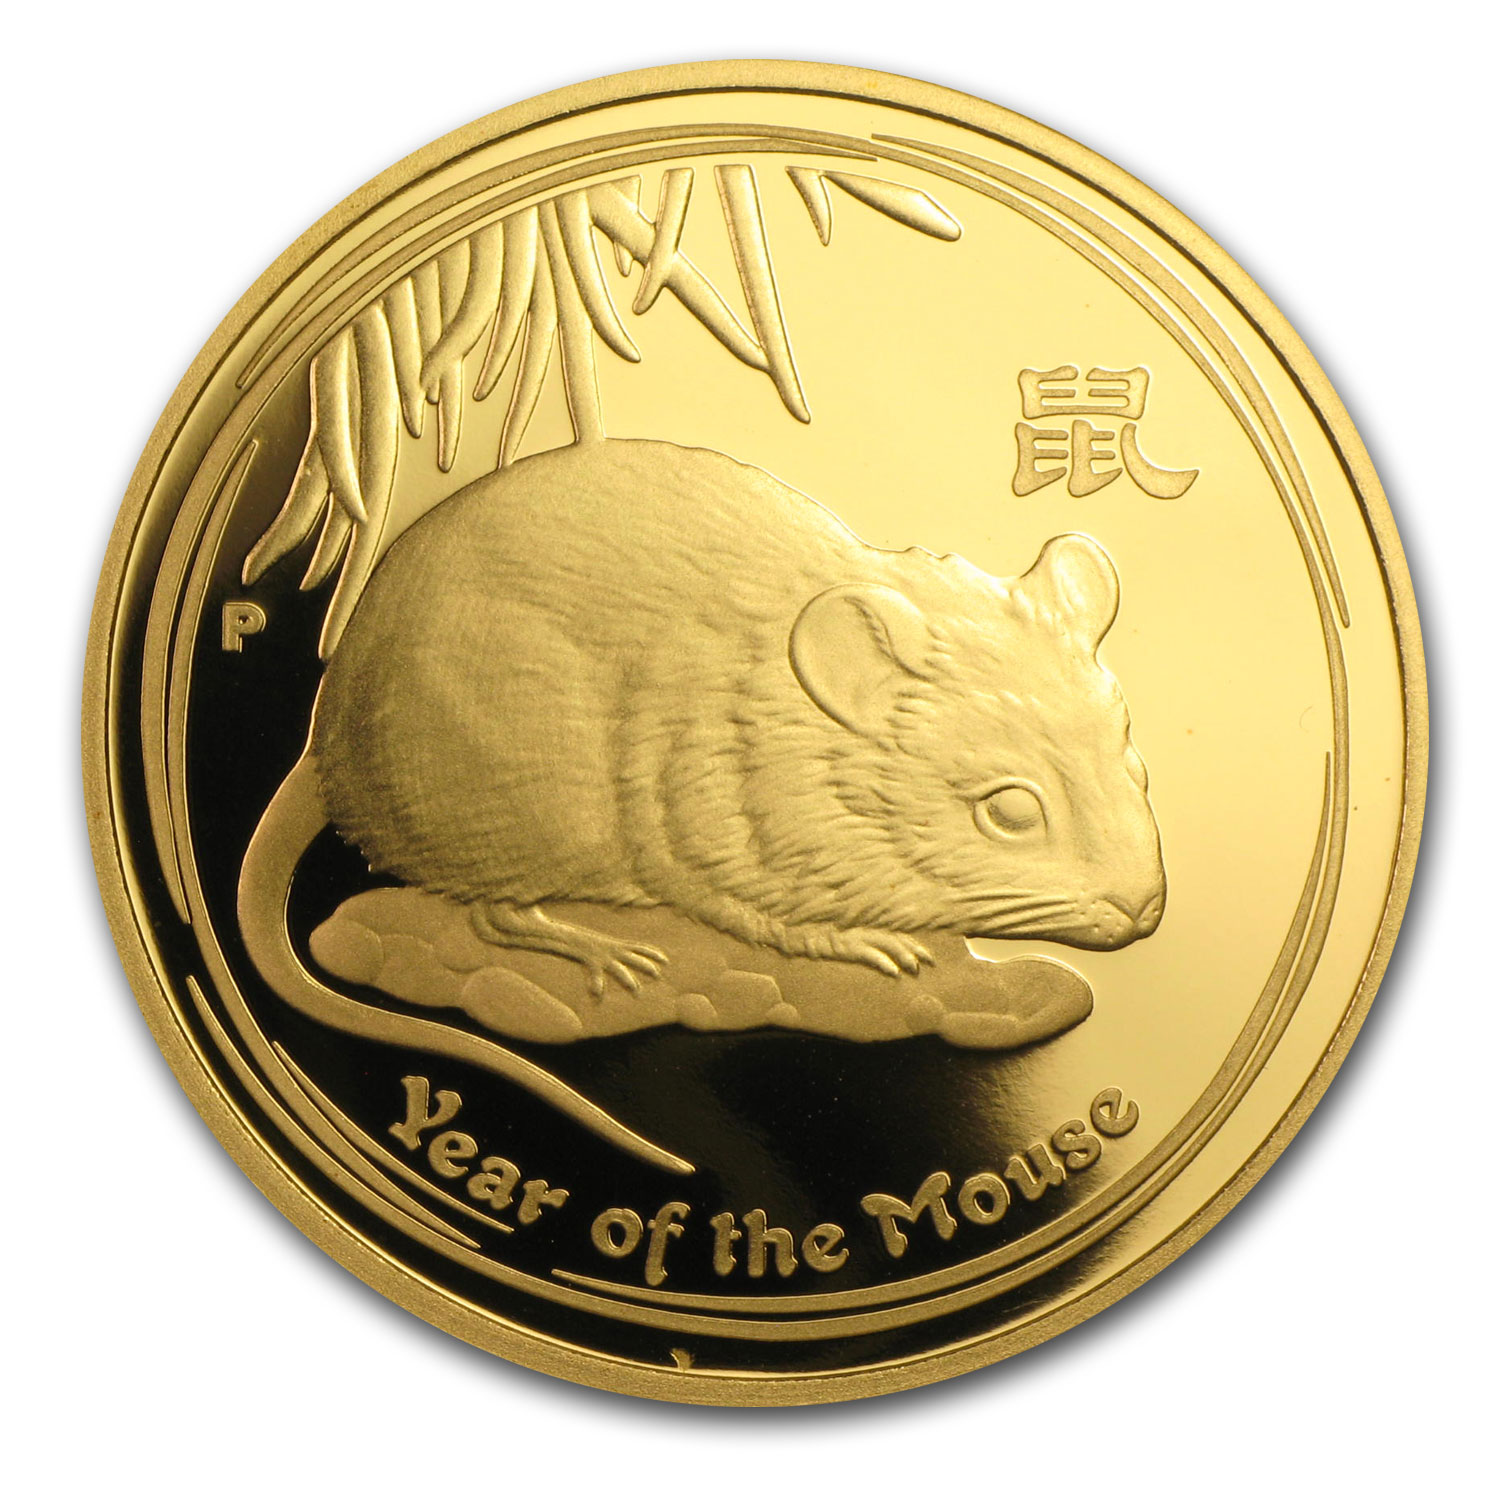 2008 Australia 1 oz Gold Lunar Mouse Proof (Series II)